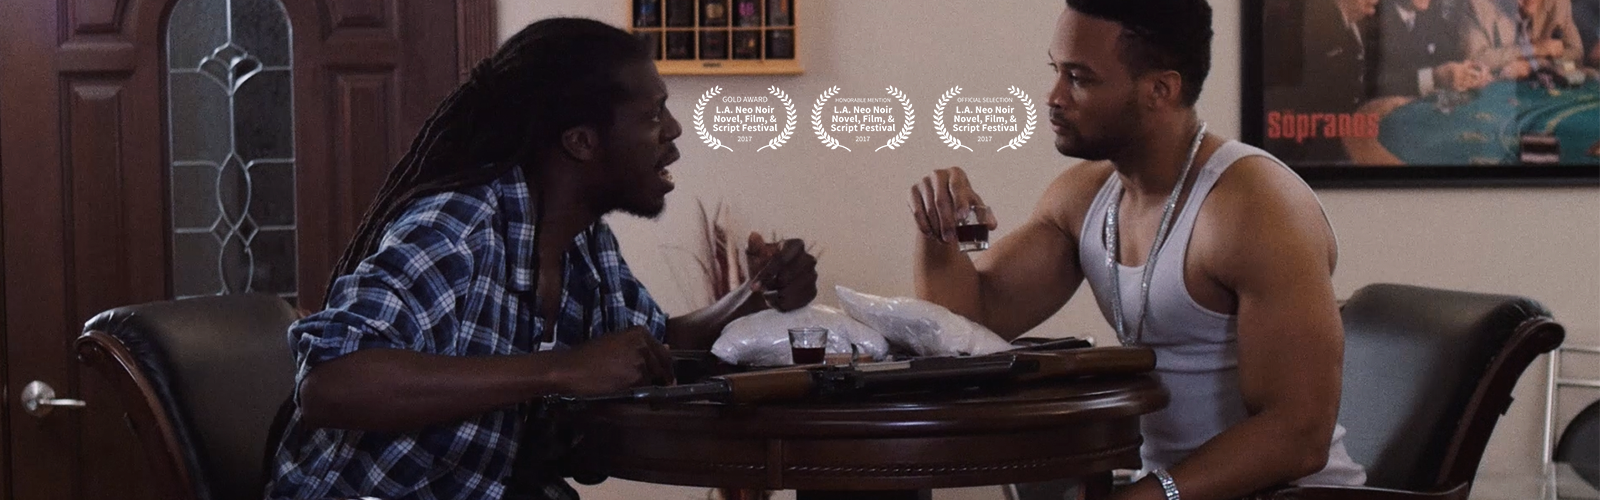 Urban Crime Trailer Gets Film Festival Gold Award